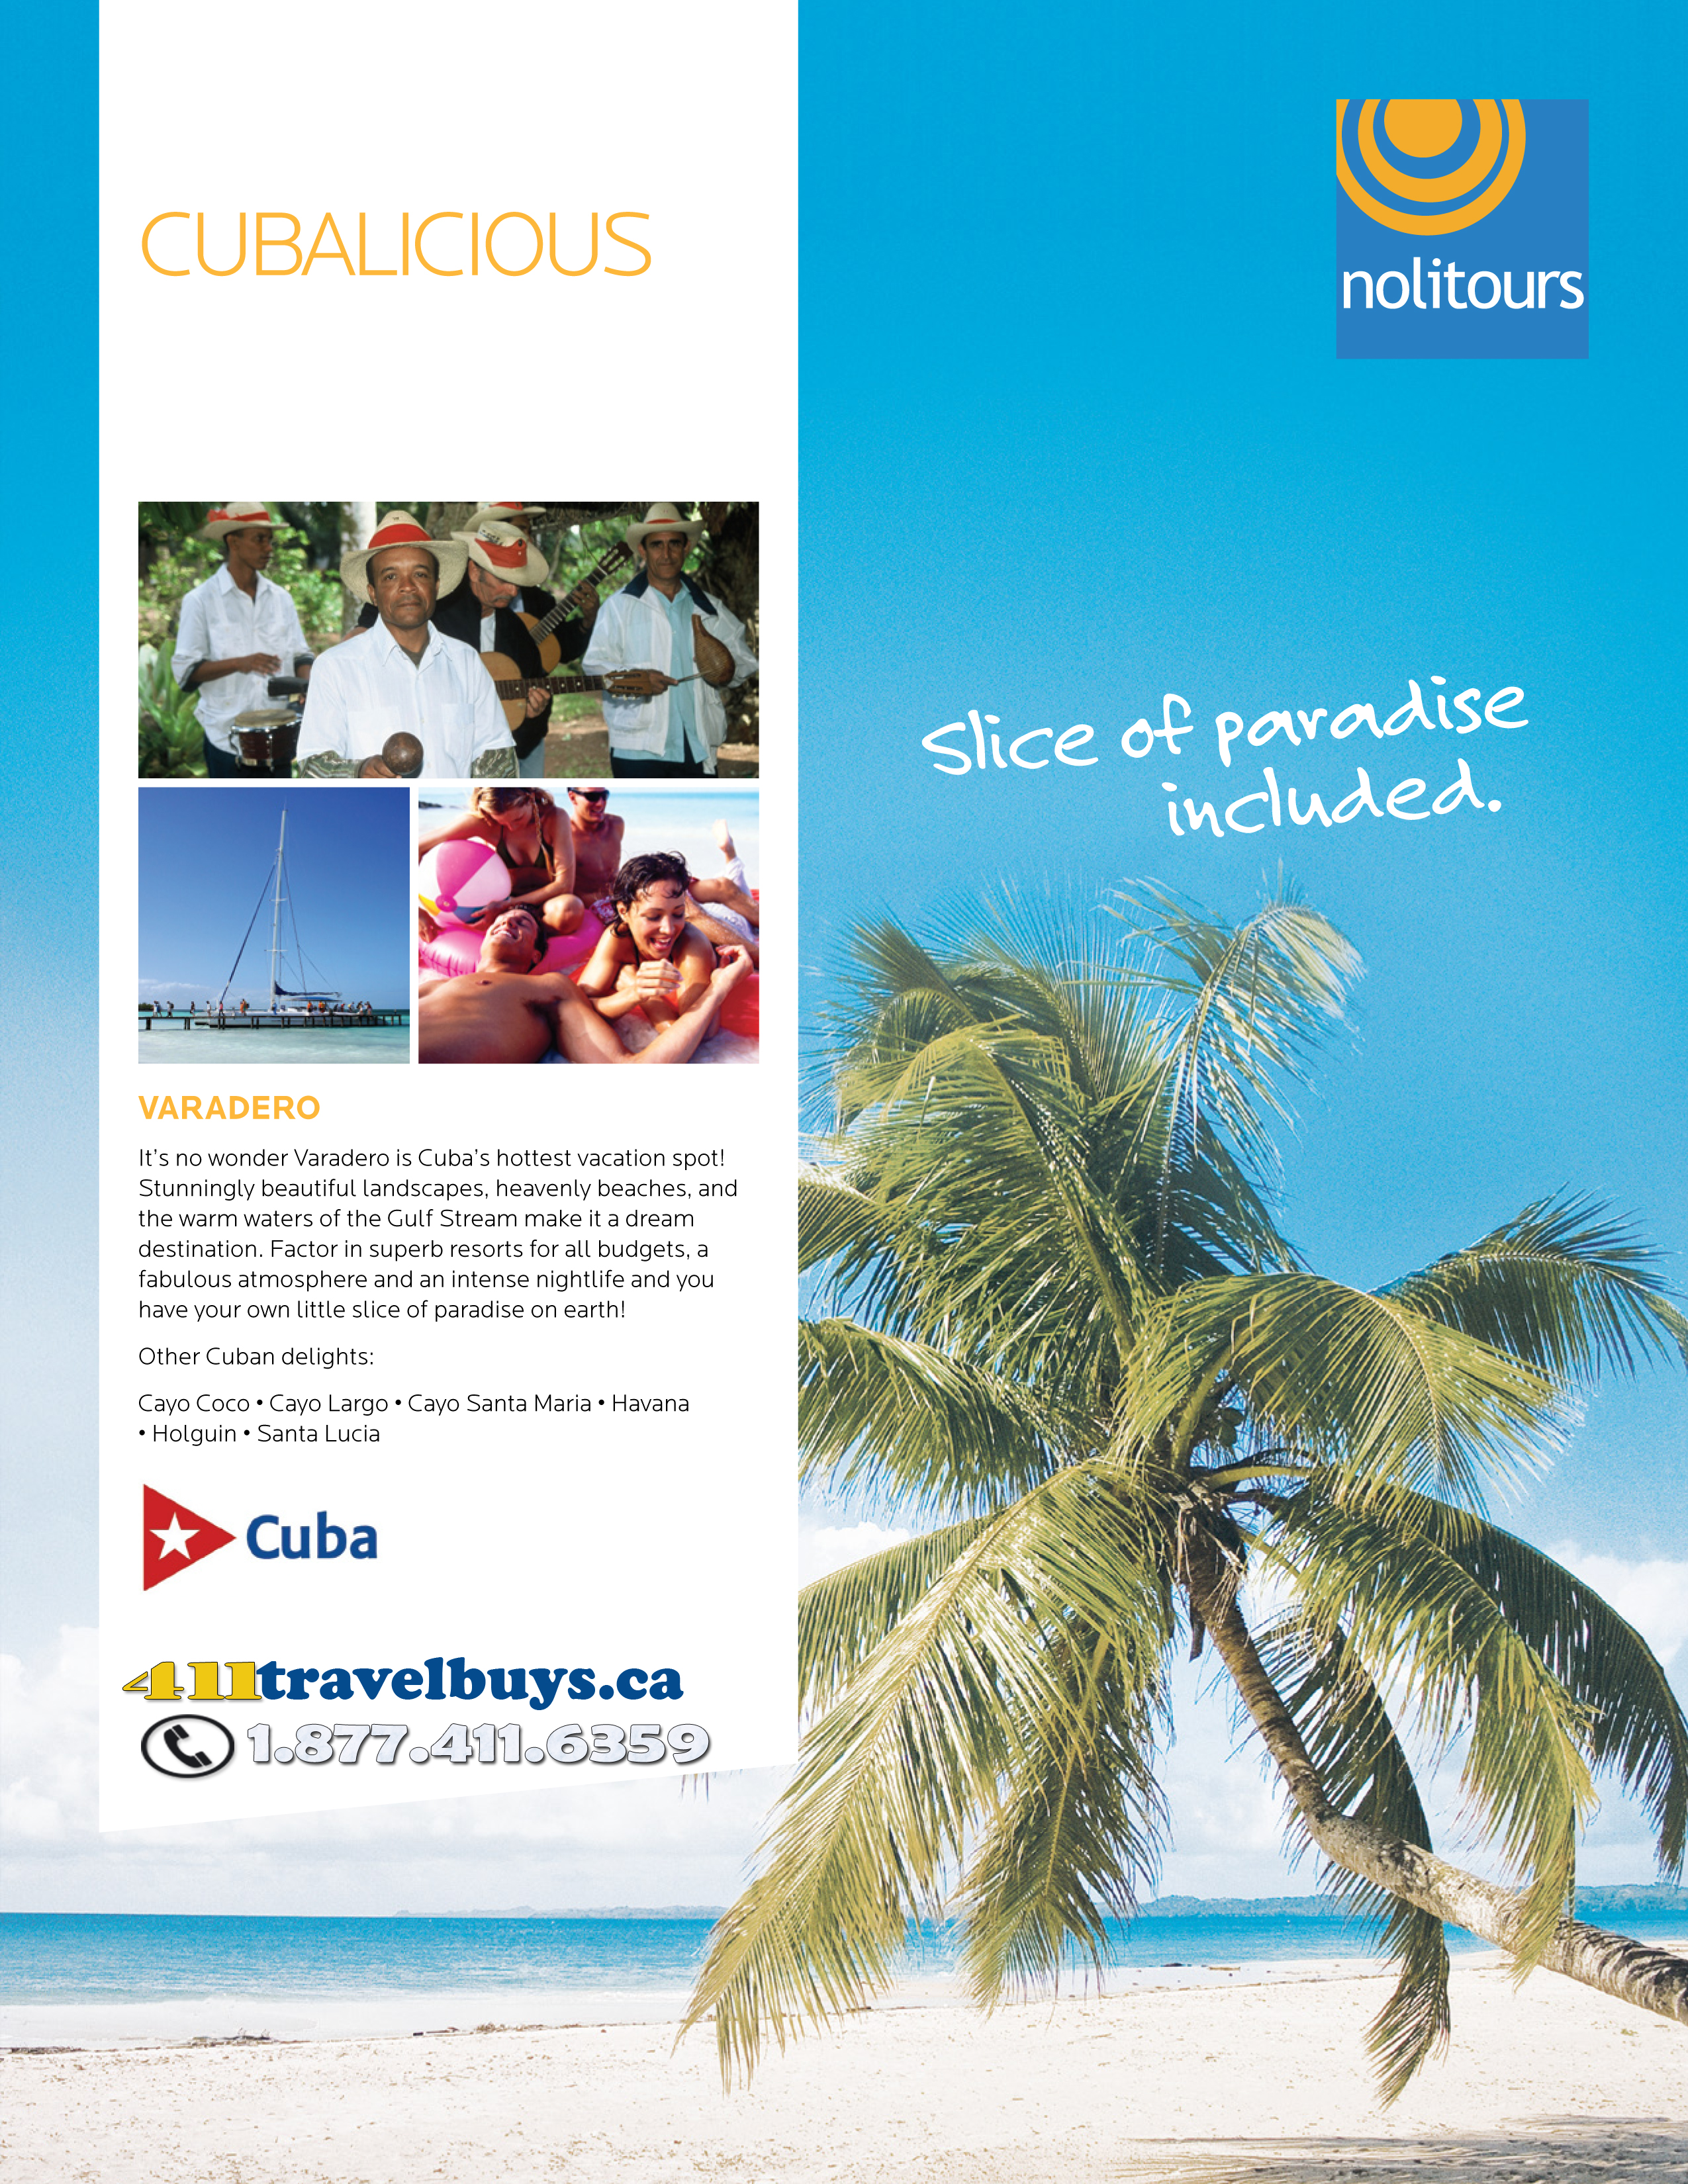 Nolitours' Travel Deals